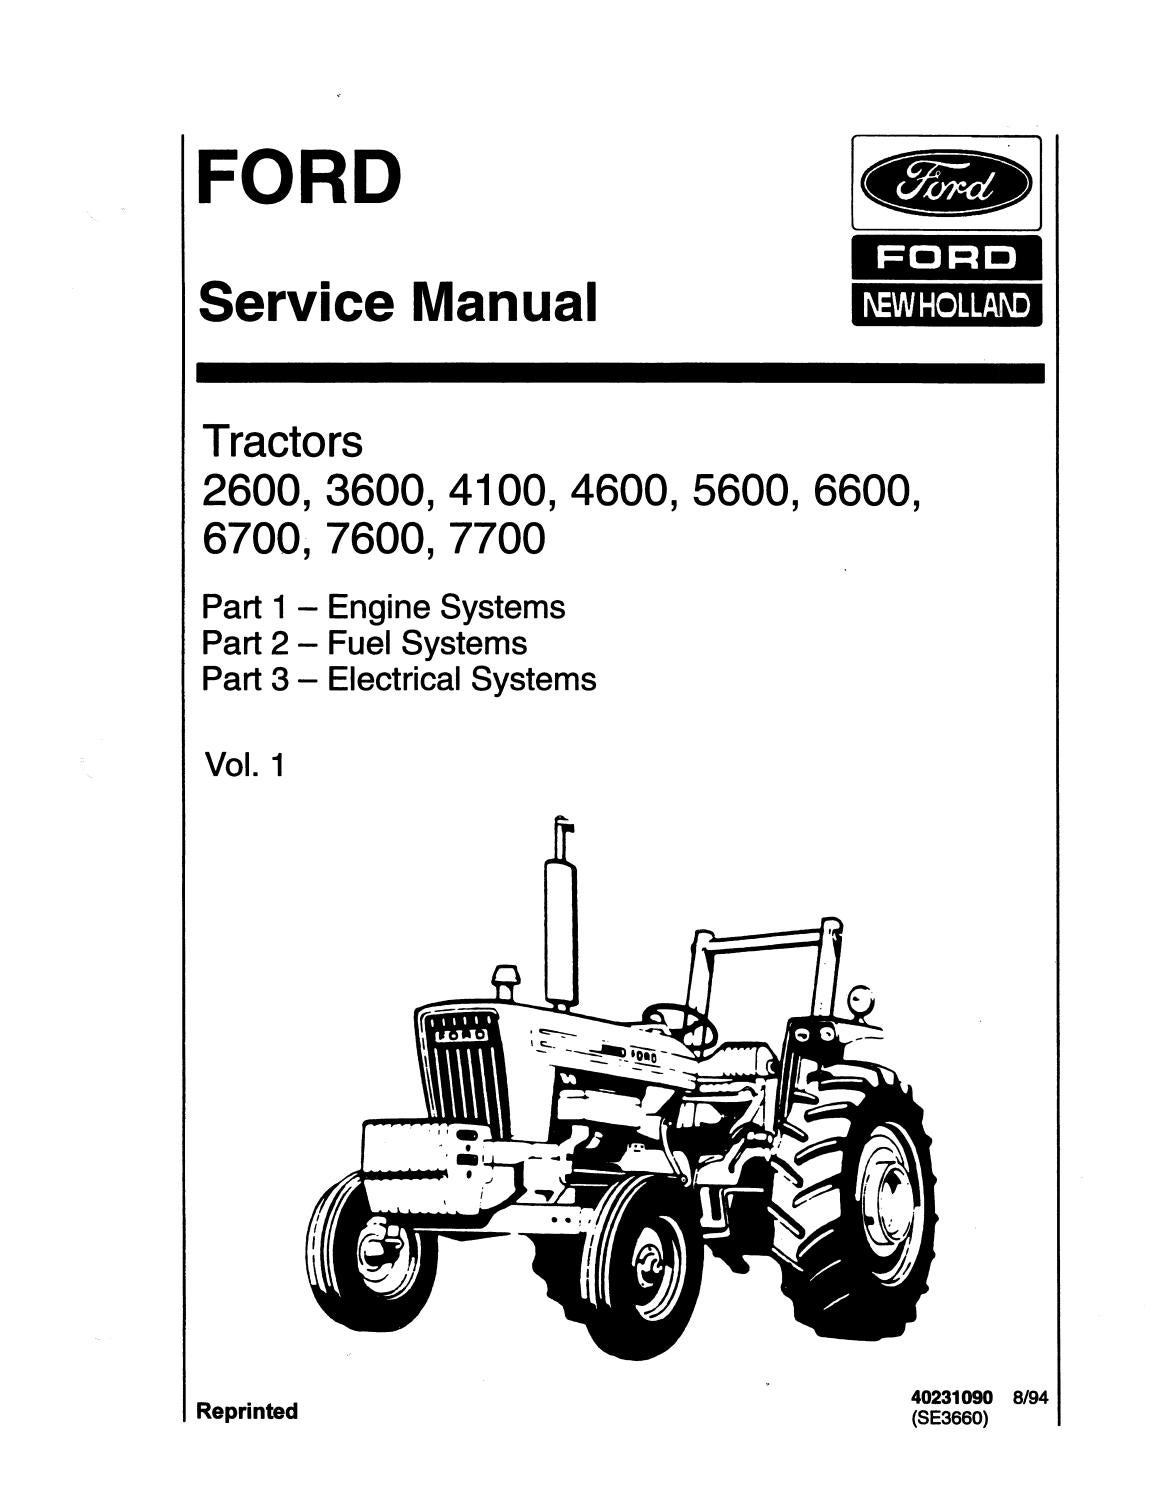 Ford 3600 Manual Free Download Pdf / Ford 3600 Tractor